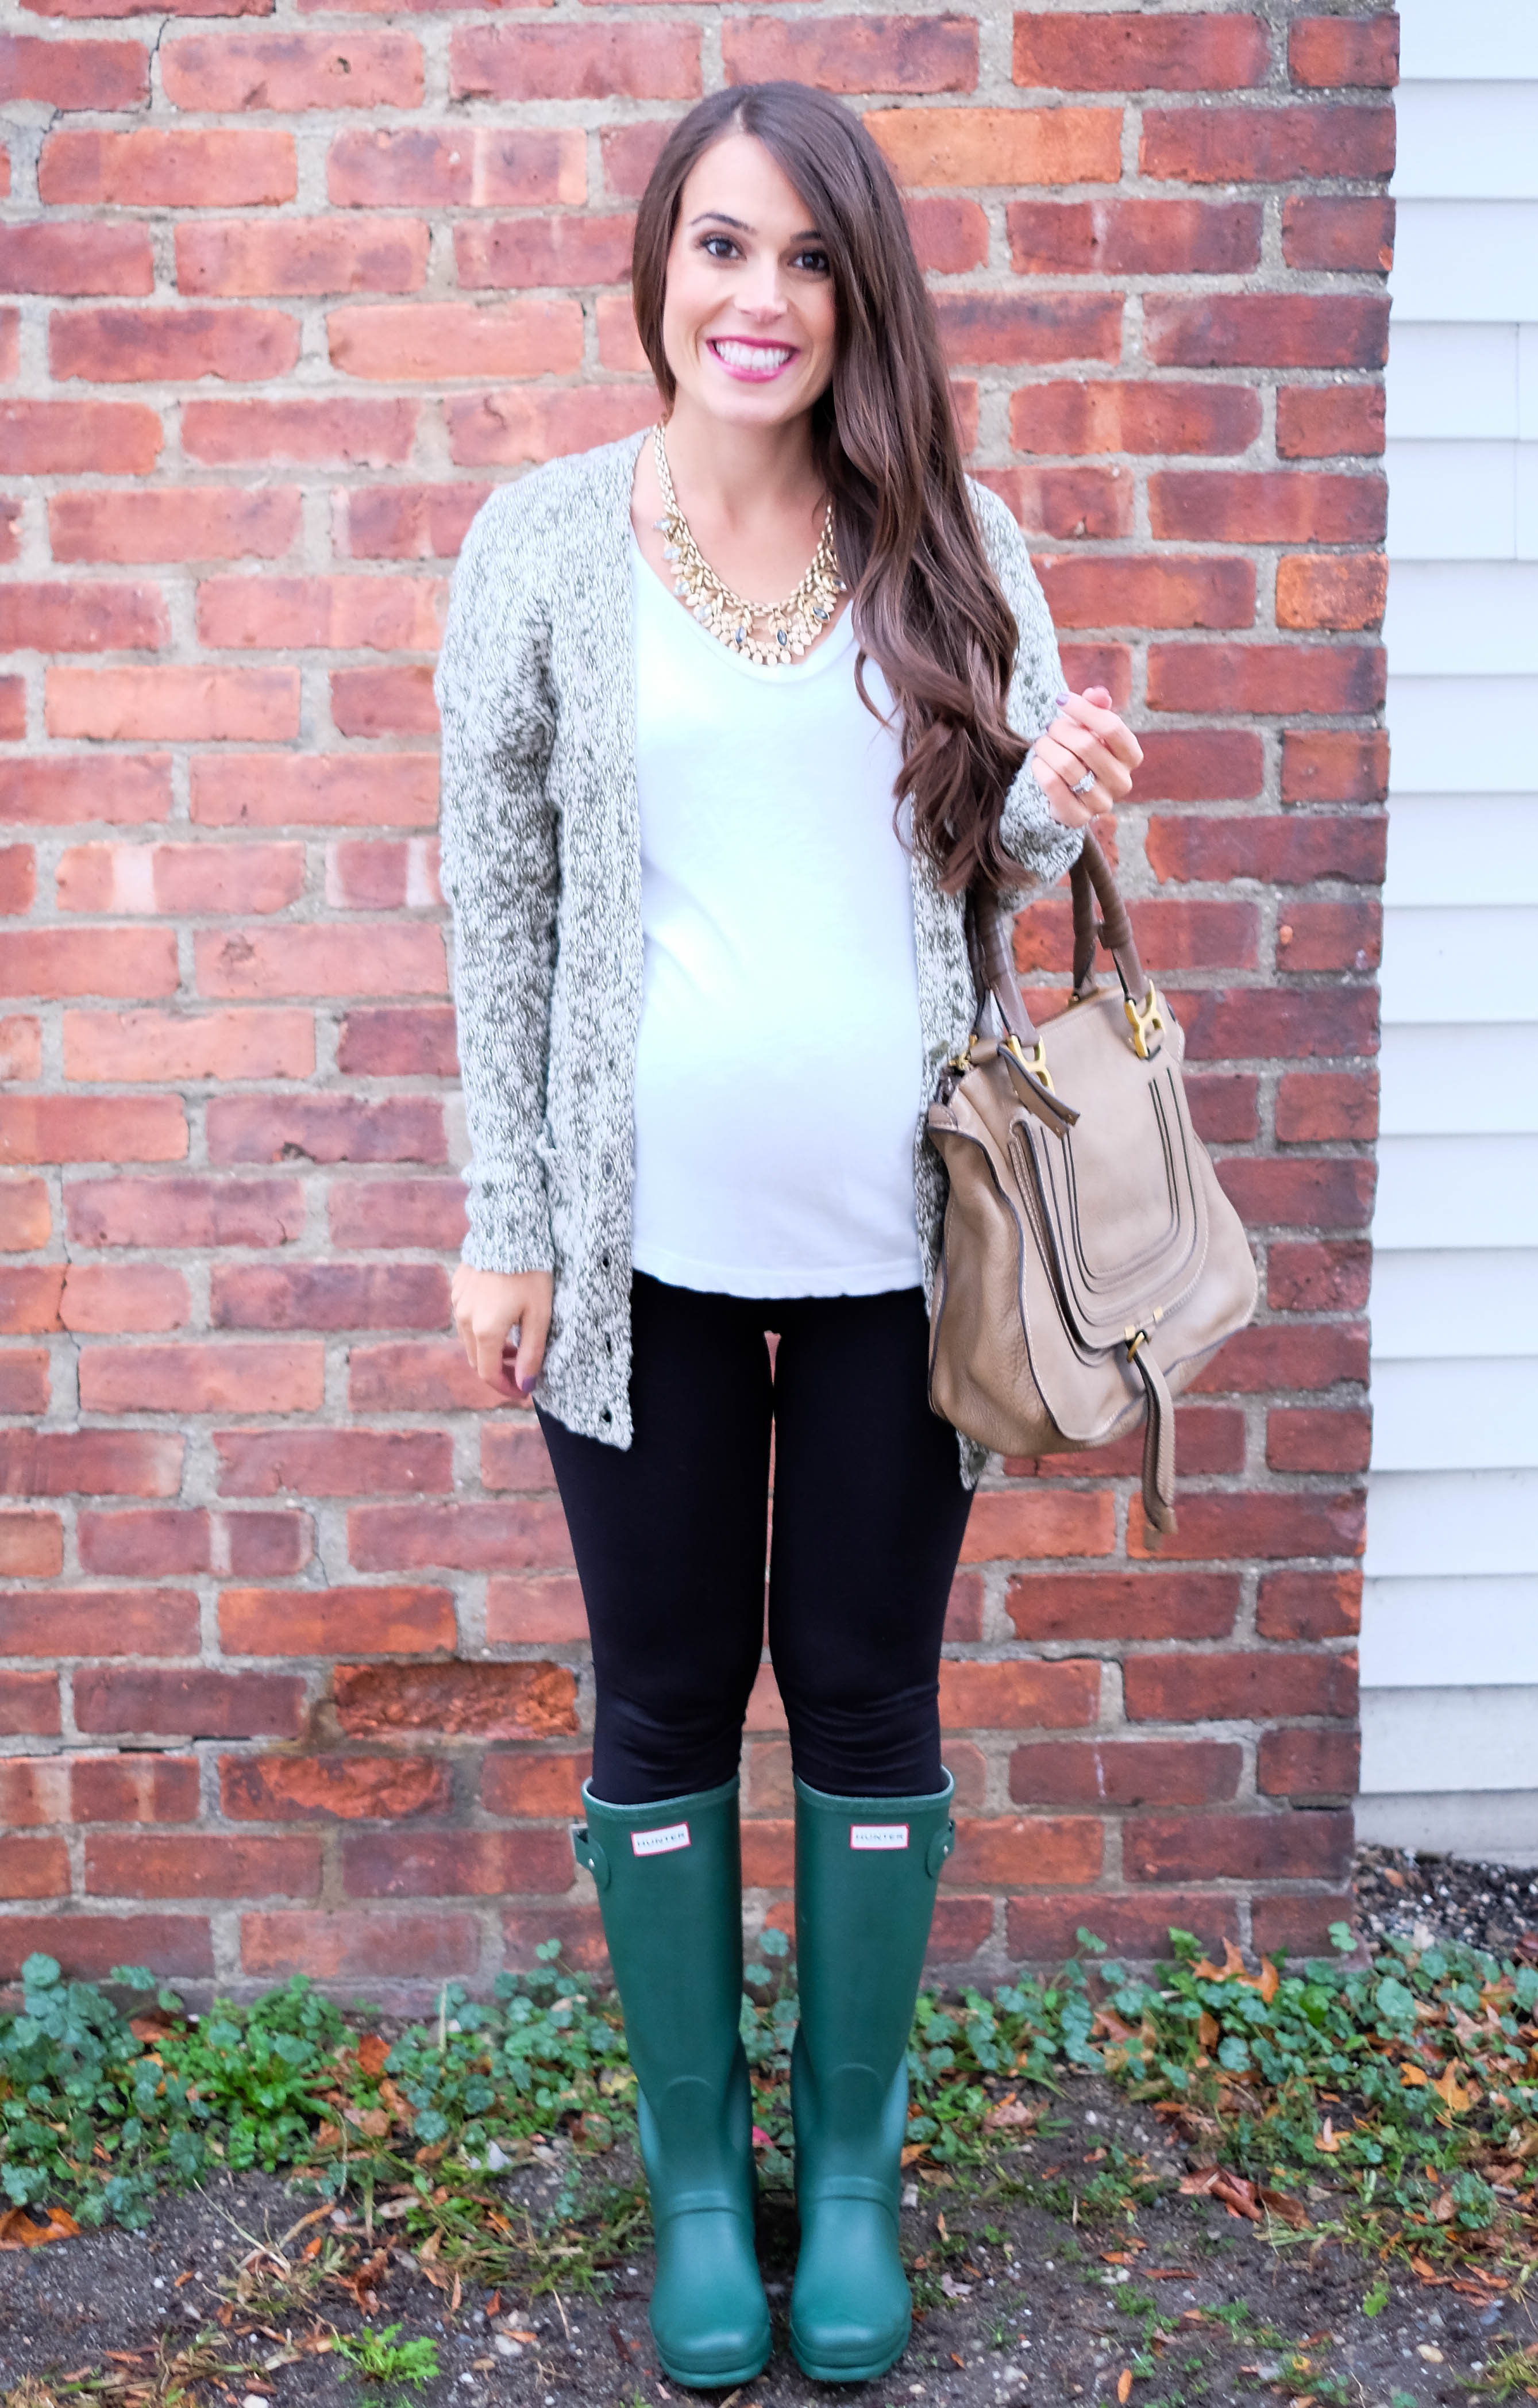 mrscasual green hunter boots outfit fall outfits fashion blog